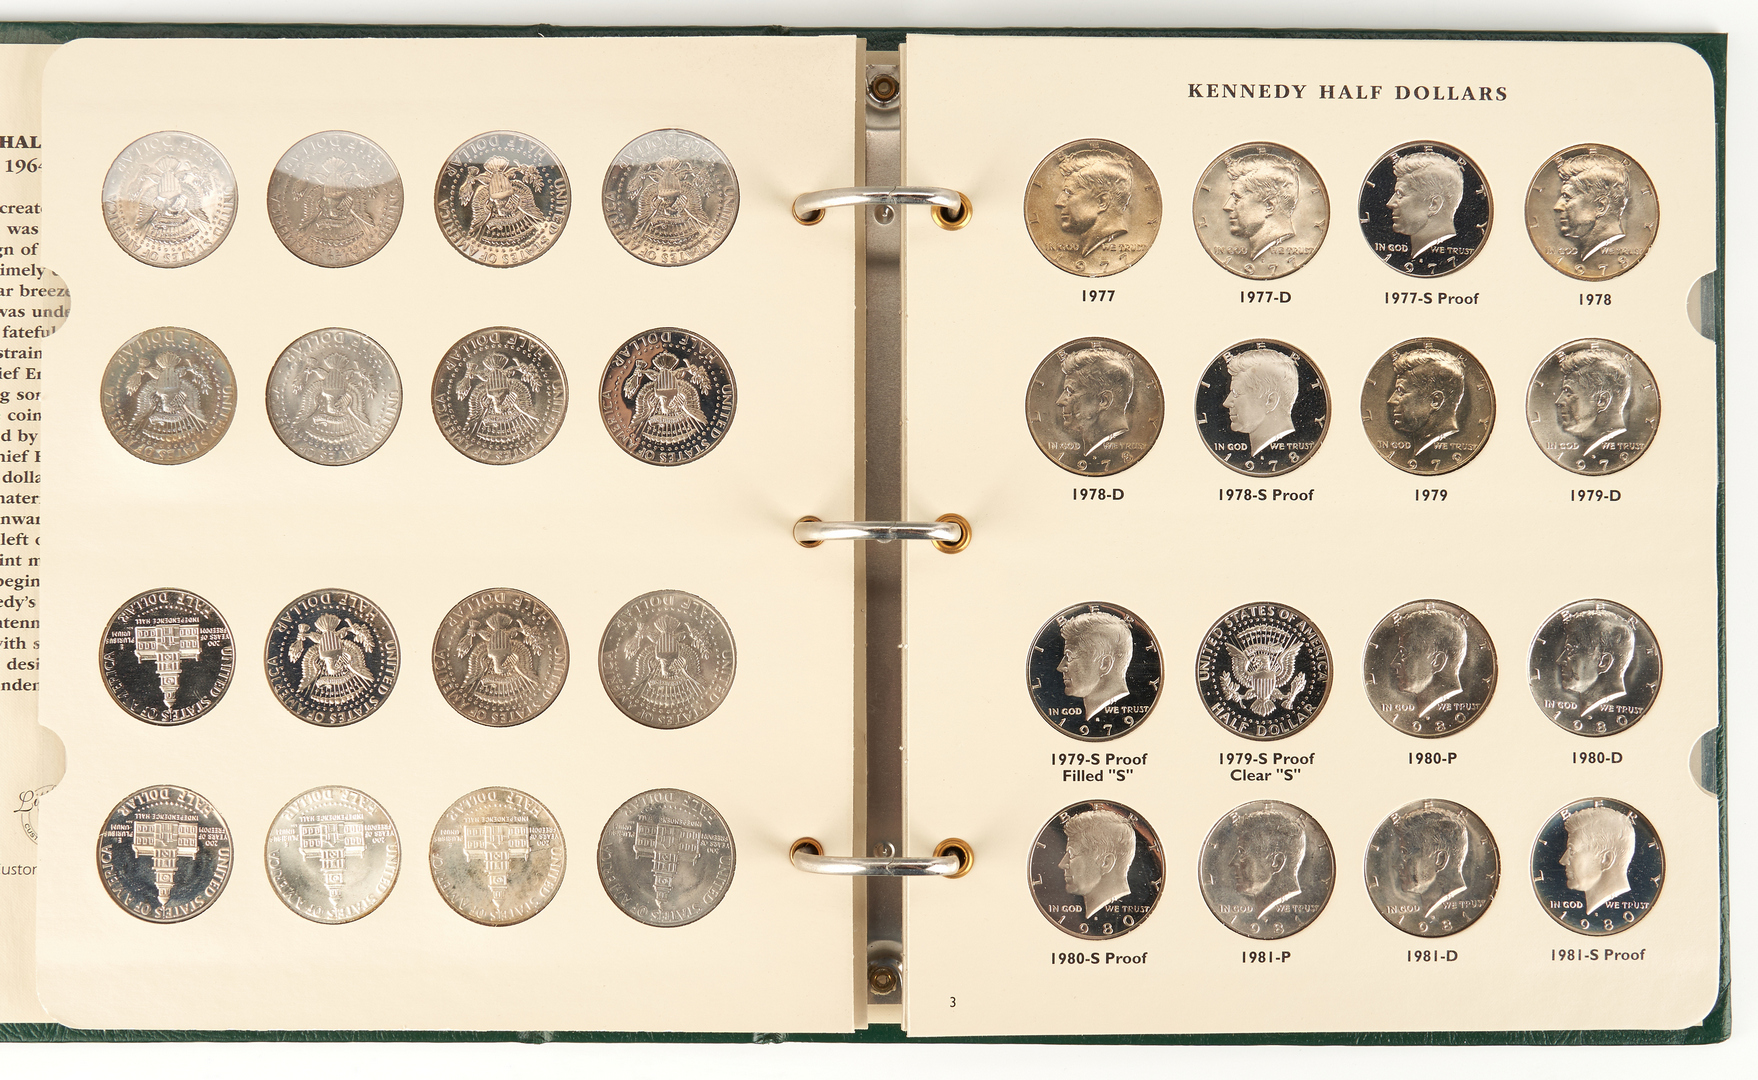 Lot 1169: 137 U.S. Mint Coins, incl. 90% Silver Coins